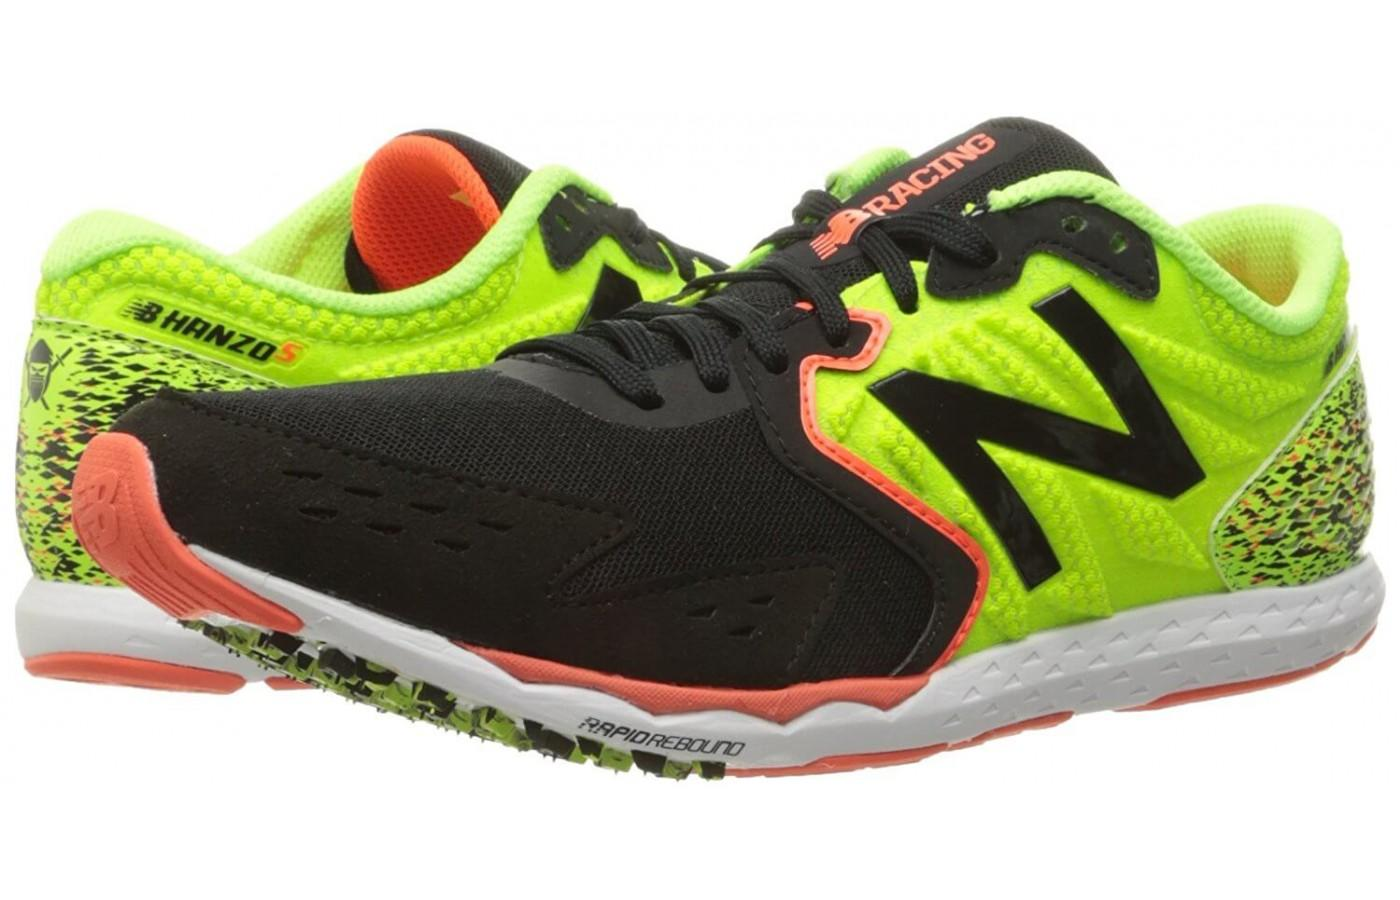 New Balance Hanzo S is a racing flat